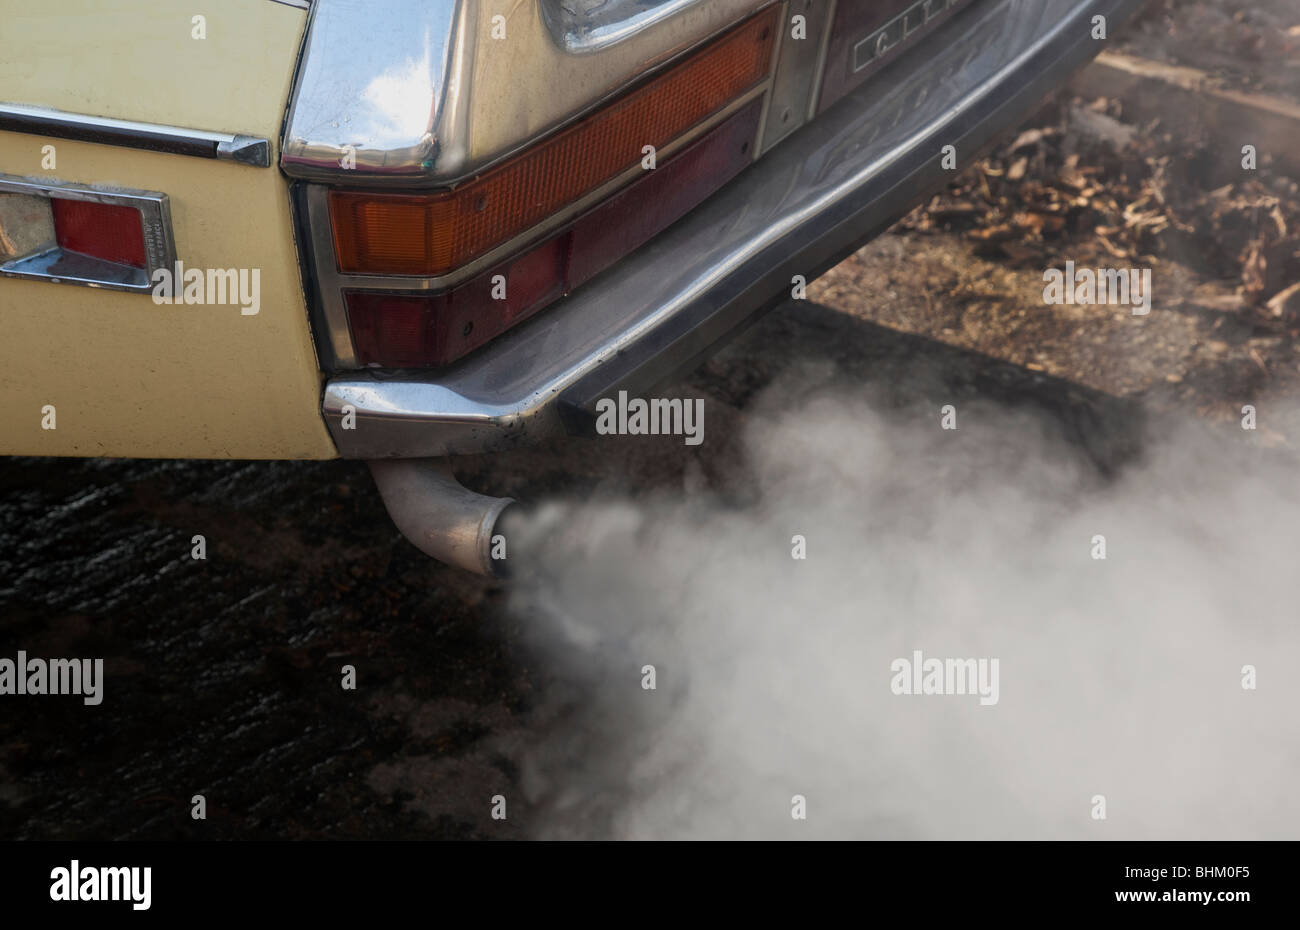 La pollution d'échappement de voiture Photo Stock